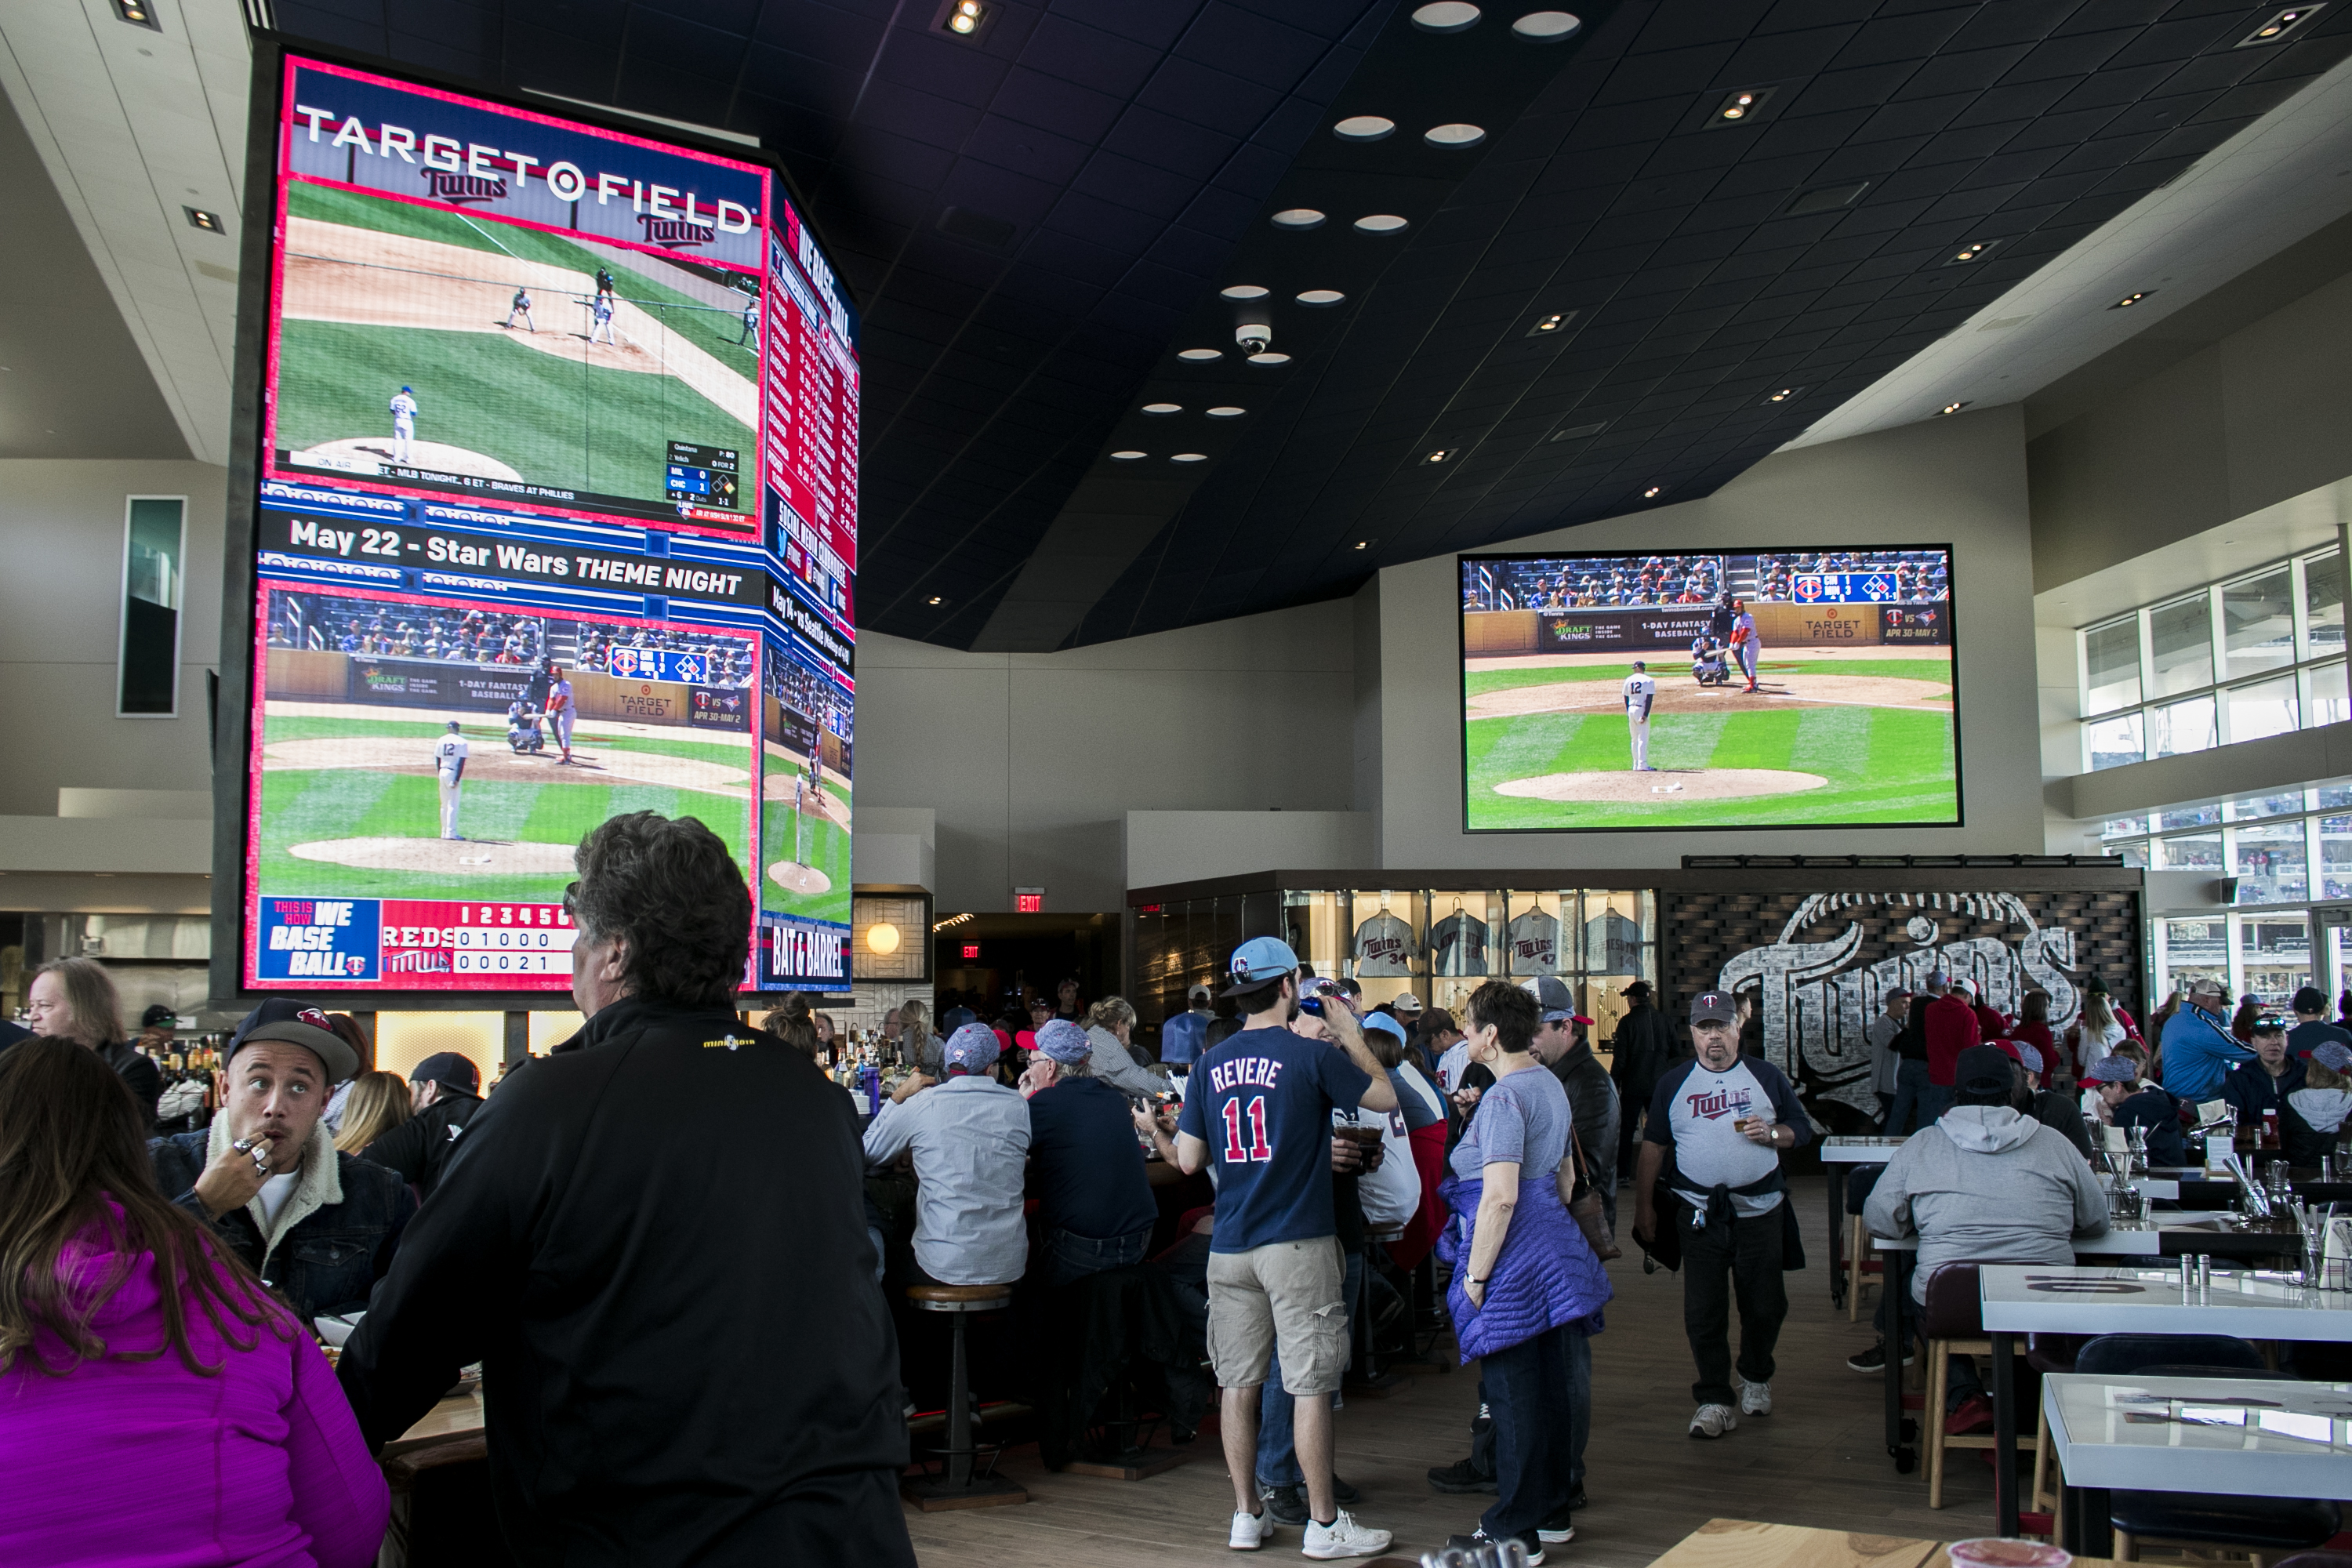 Minnesota Twins_Target Field_BatandBarrel_ NPN-4100-2.5MN-1620x2880_04